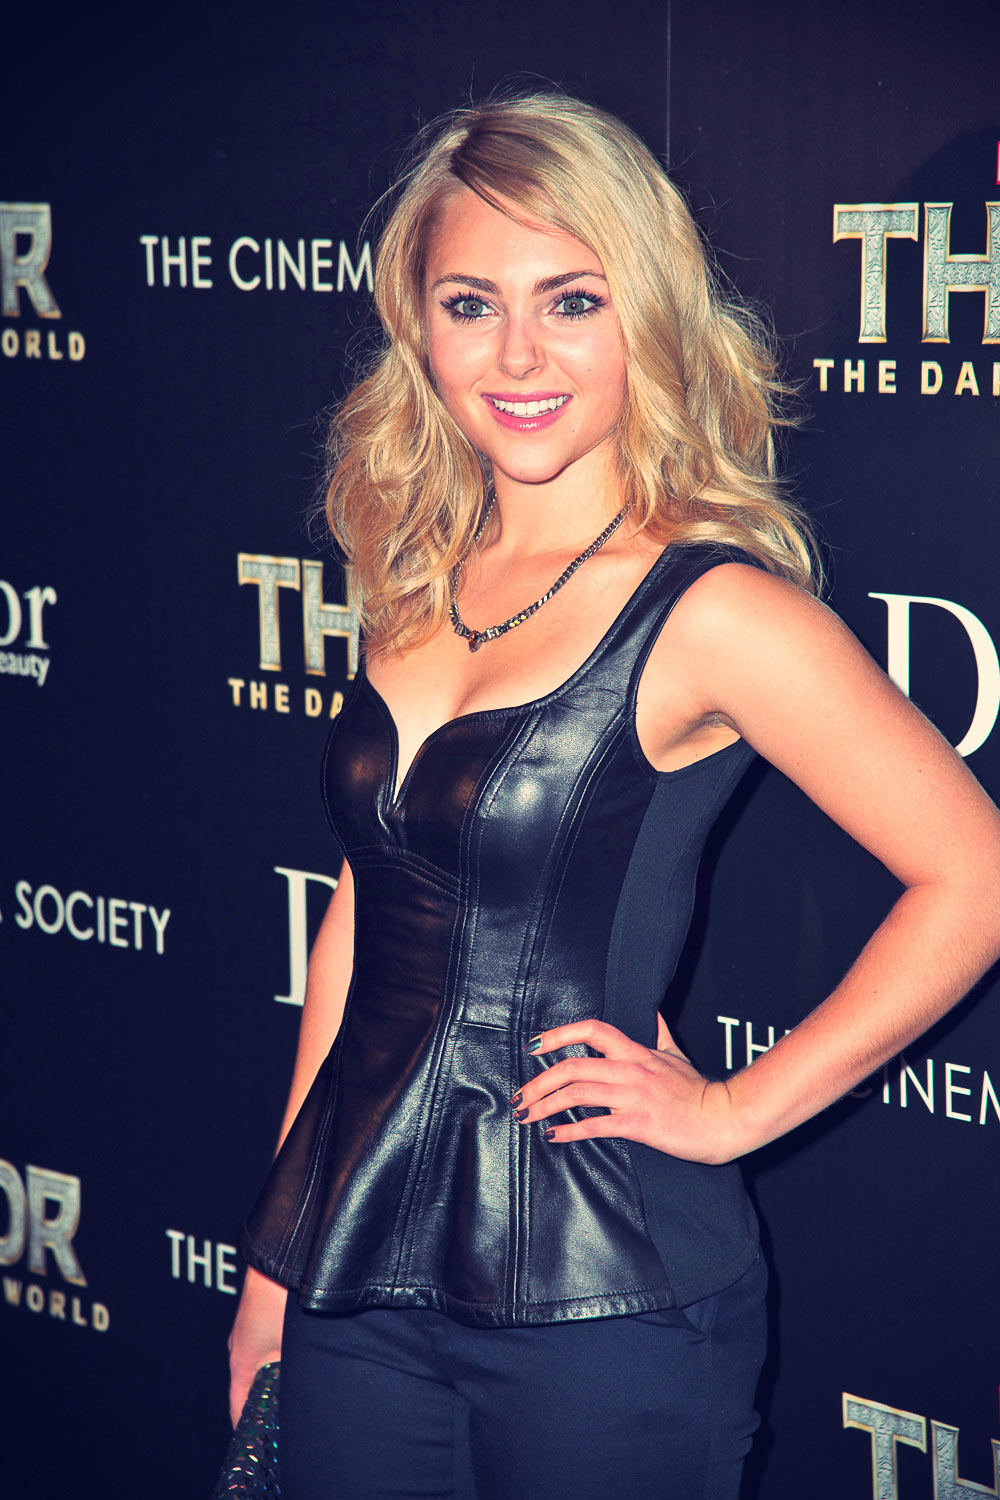 AnnaSophia Robb attends a screening of Thor The Dark World